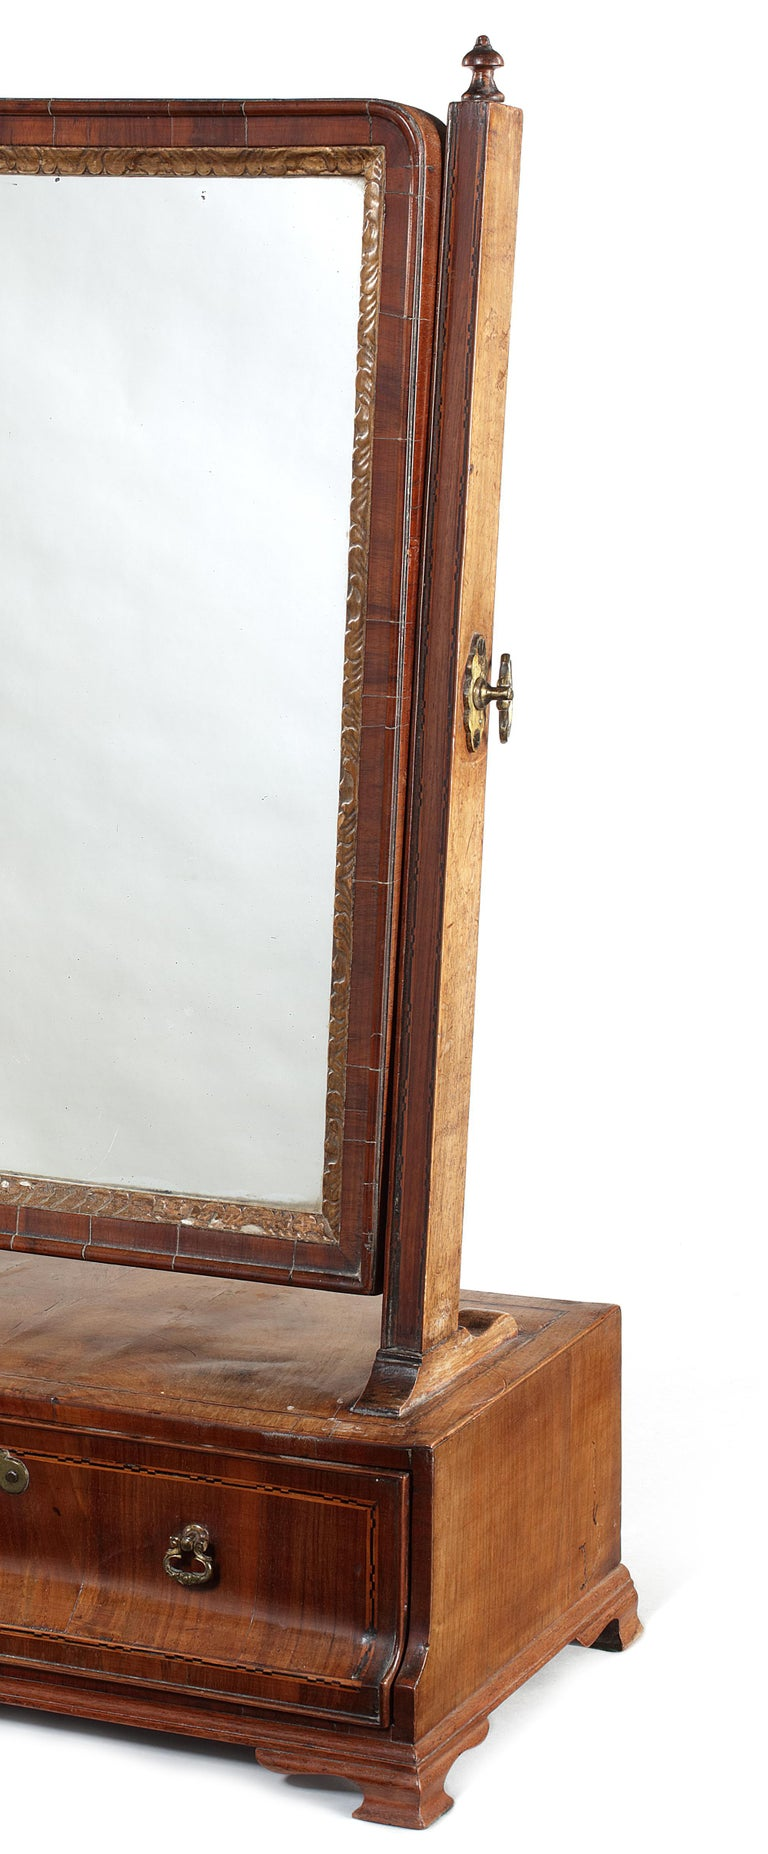 British 18th Century Queen Anne Walnut and Chequerbanded Toilet Mirror For Sale